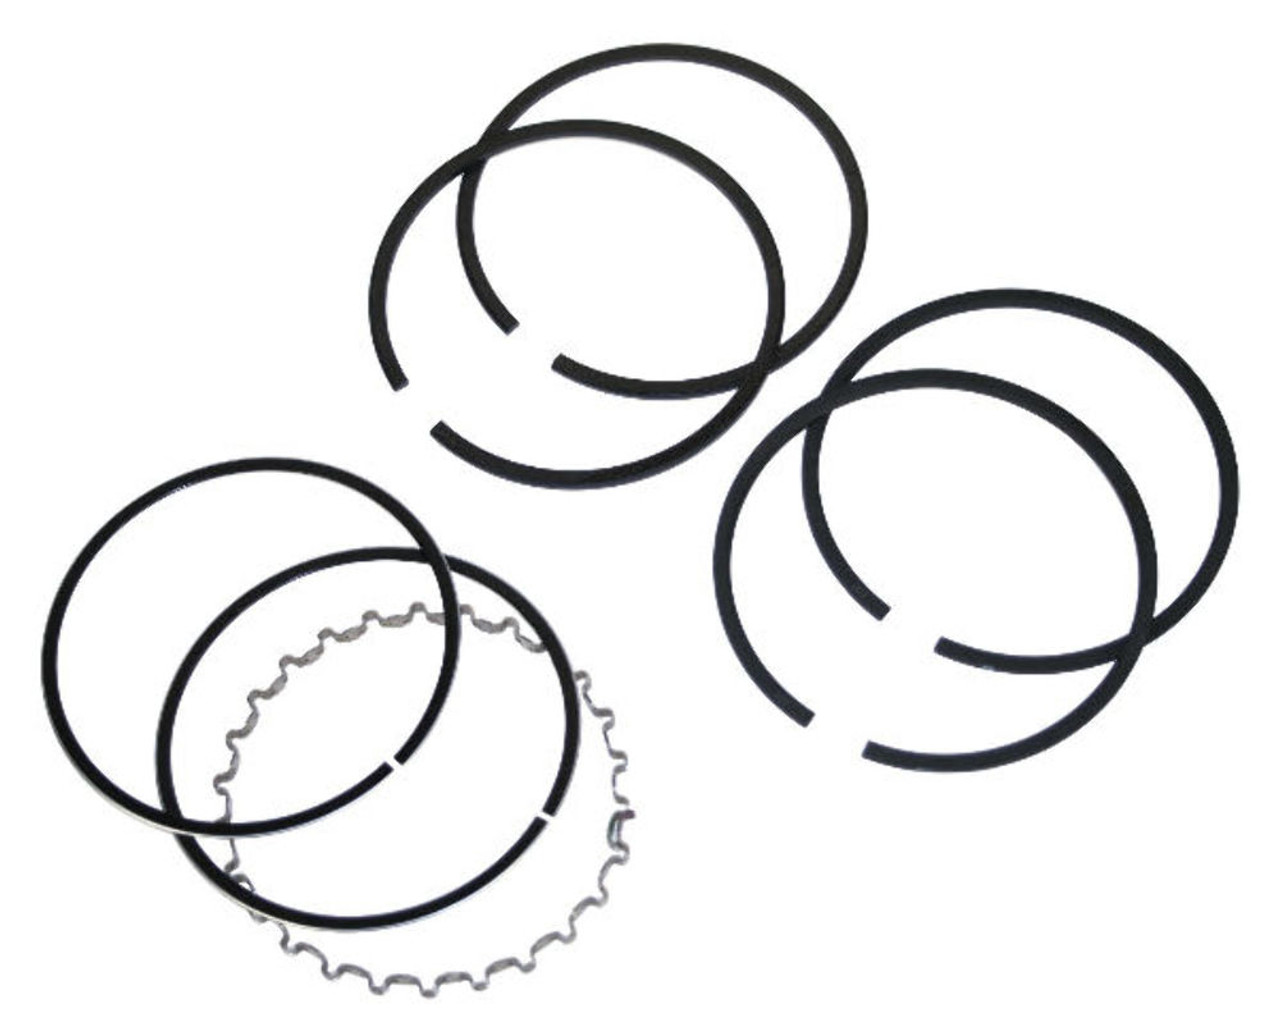 Piston Ring Set, 94 2X2.X4.0mm, Grant, Cast Top Ring, Fits VW Air Cooled, 98-1195